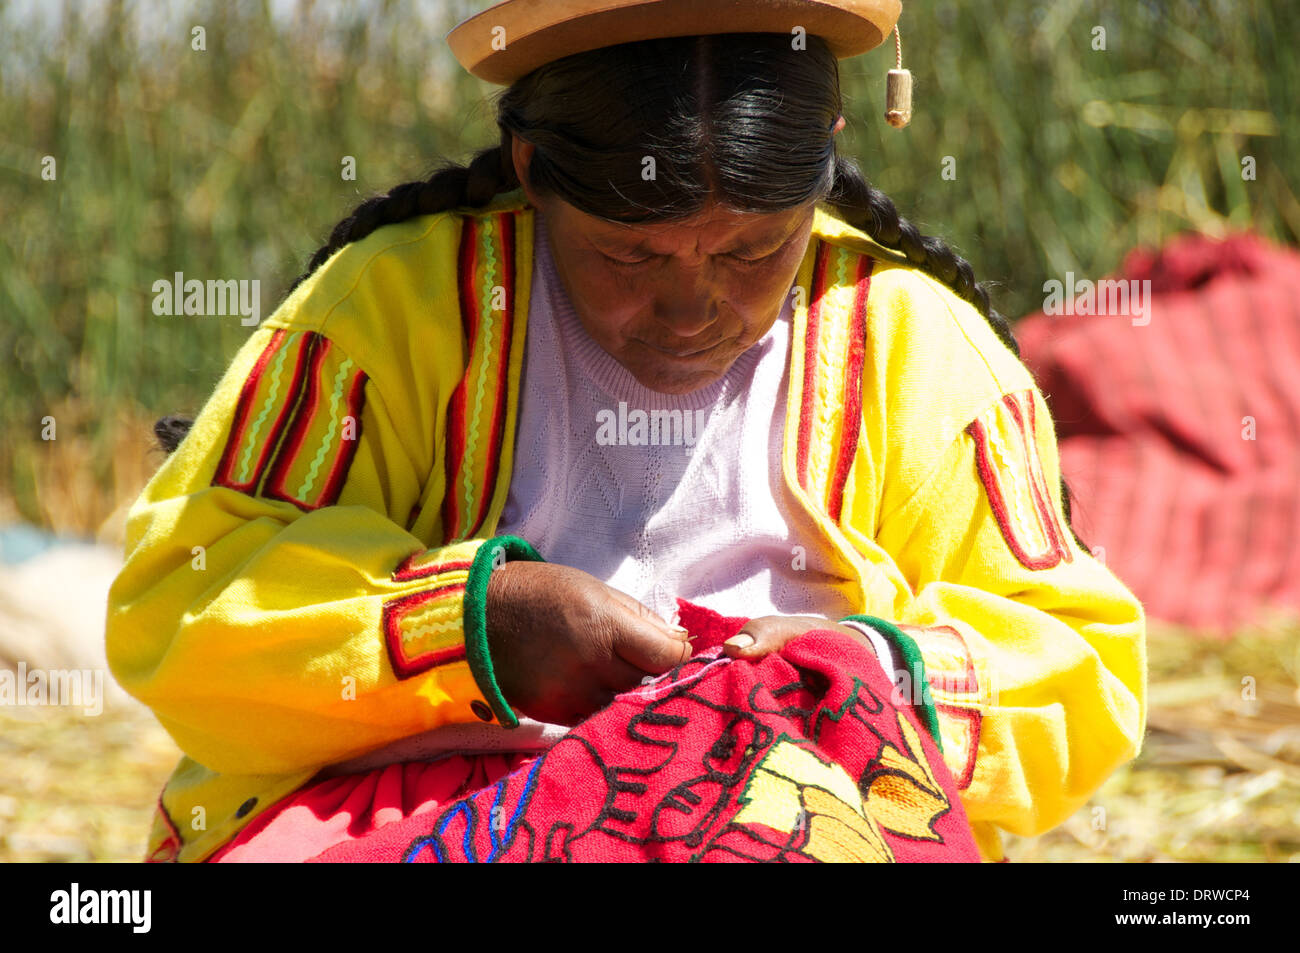 Inca woman in traditional dress embroidering colourful clothing on floating reed islands of Lake Titikaka in Peru, South America - Stock Image